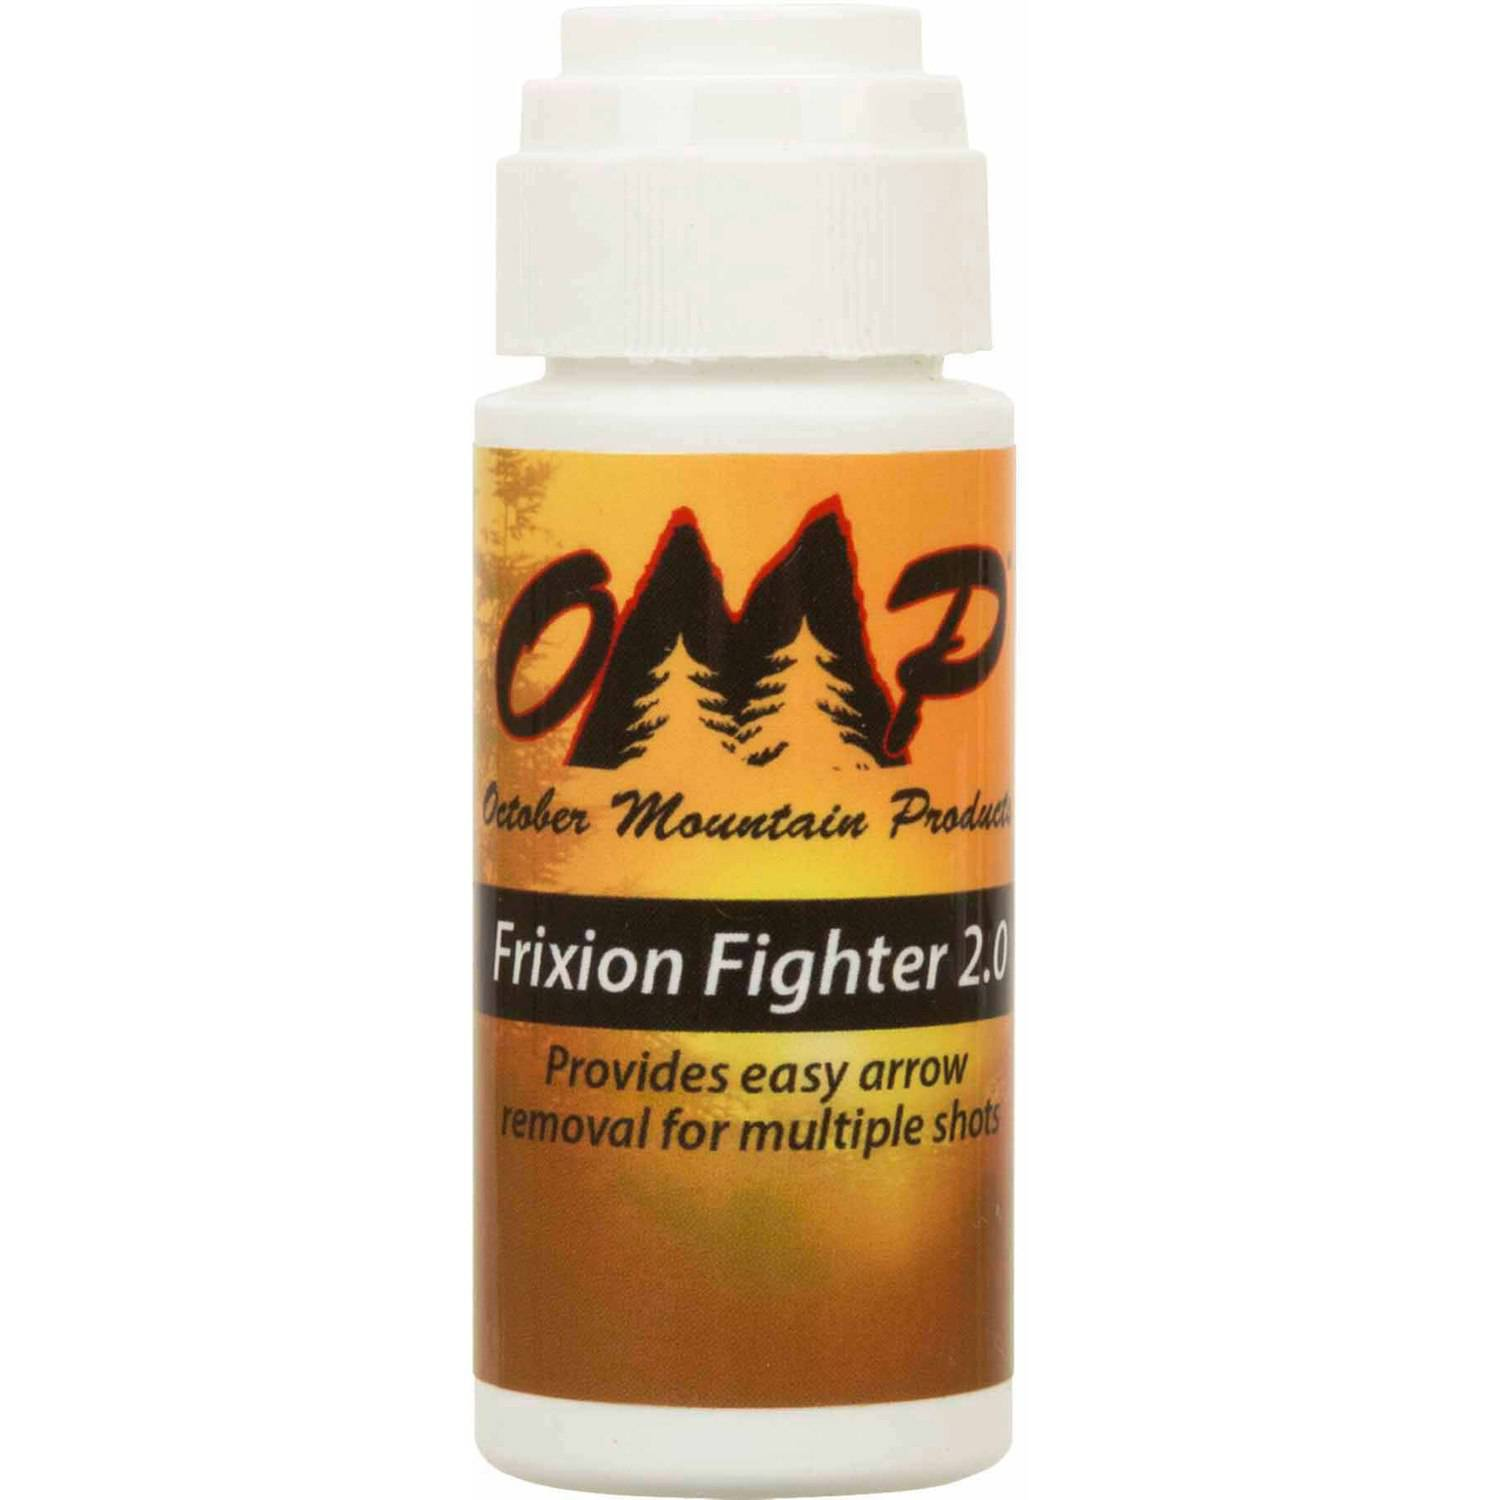 October Mountain 45367 FriXion Fighter 2.0 Arrow Lube, 2 Ounces